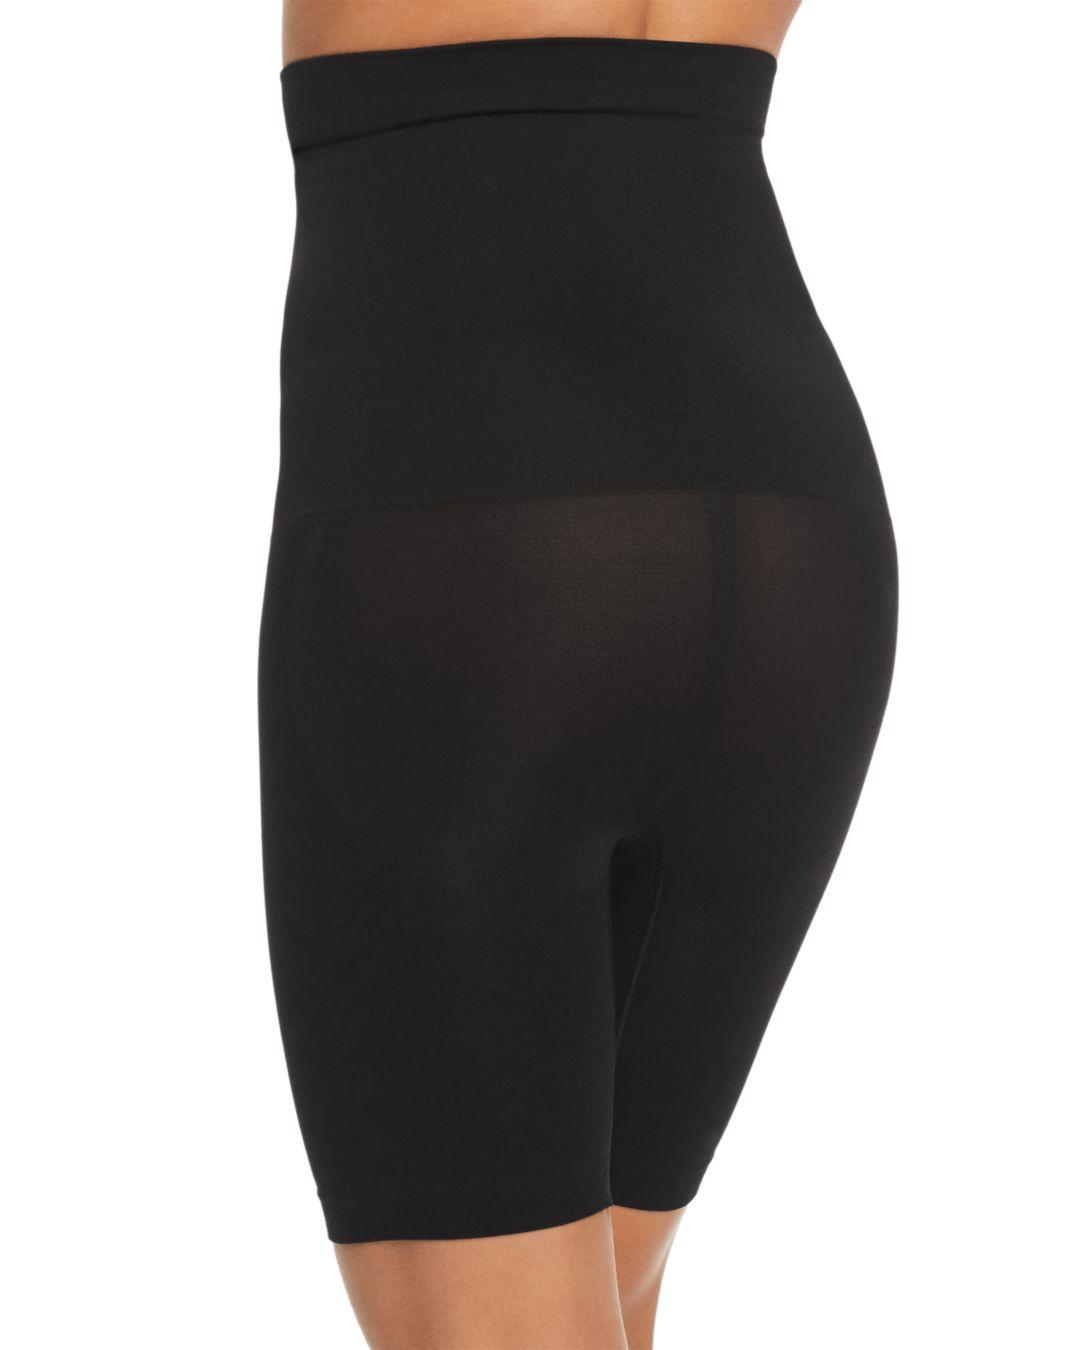 Yummie by heather thomson High-waisted Shapewear Shorts in